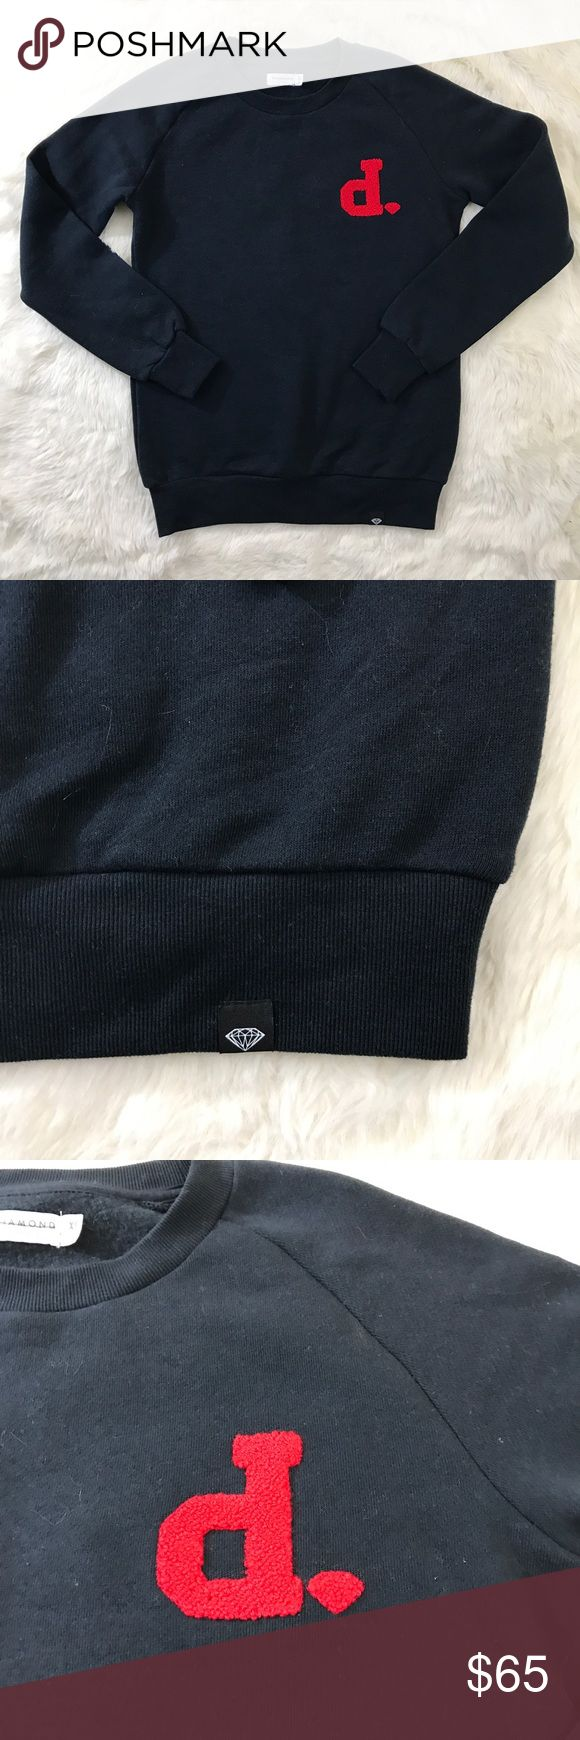 """Diamond Supply Women Blue Sweater crewneck Sz XS New without Tags. Diamond Supply size XS. Blue crewneck sweater. Measurements laying flat                    Pit to Pit 18"""".  Sleeve length 27.5"""" from collar. Length 25"""".  80%cotton 20%polyester Diamond Supply Co. Sweaters Crew & Scoop Necks"""